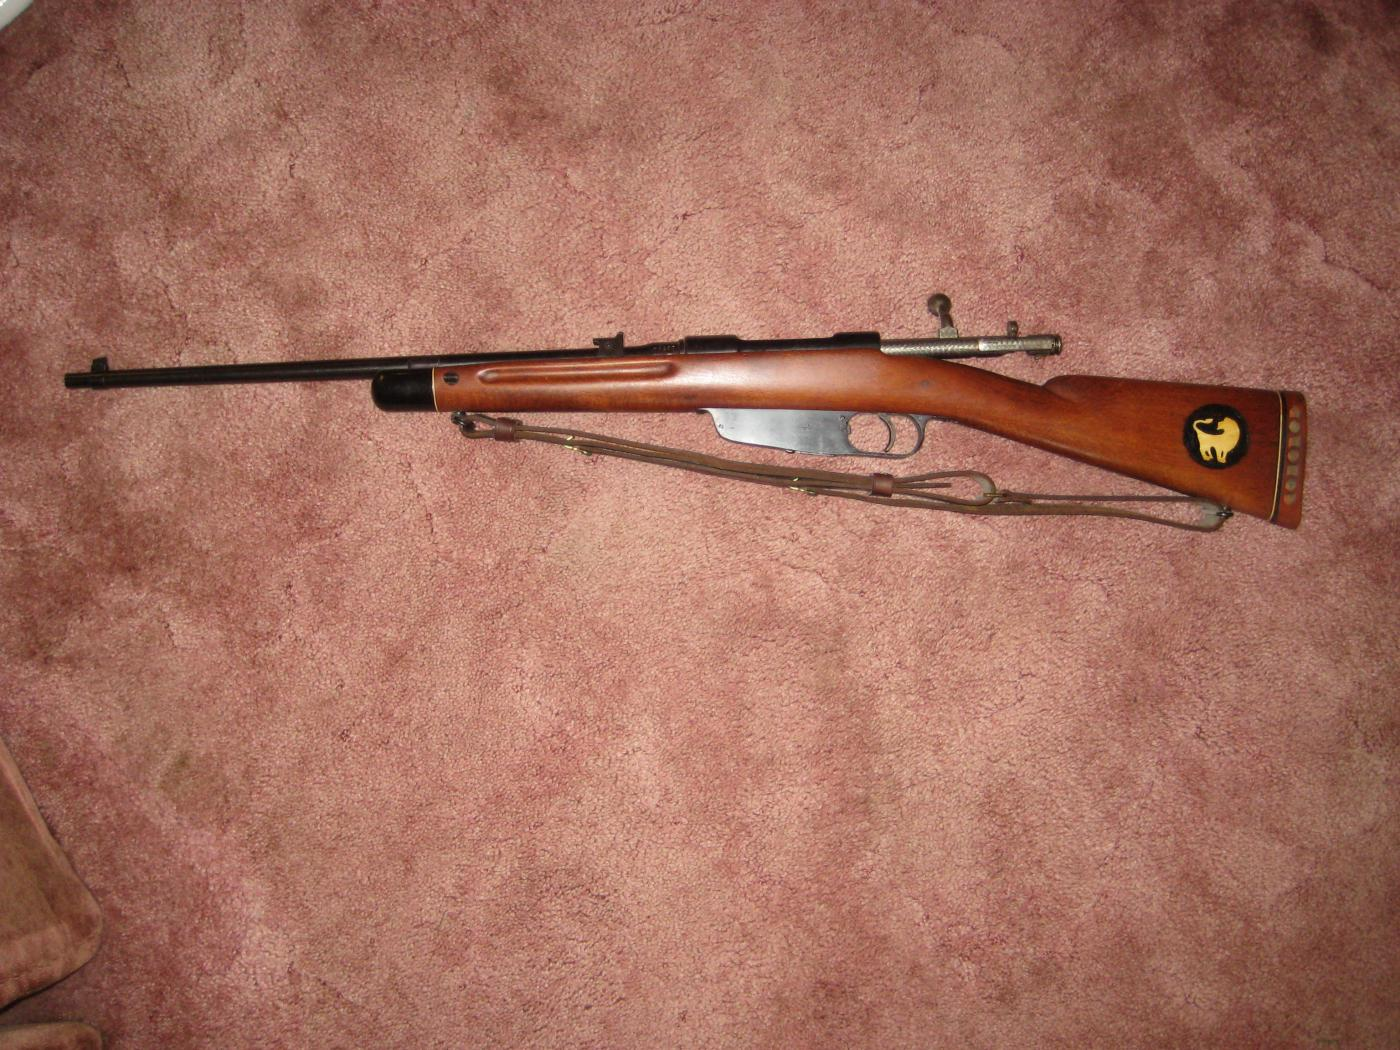 terni singles This is a 9138 terni carcano chambered for 735x51 the finish has grayed along the metal the stock is in good condition and has for sale by marzan on gunsamerica - 982185646.